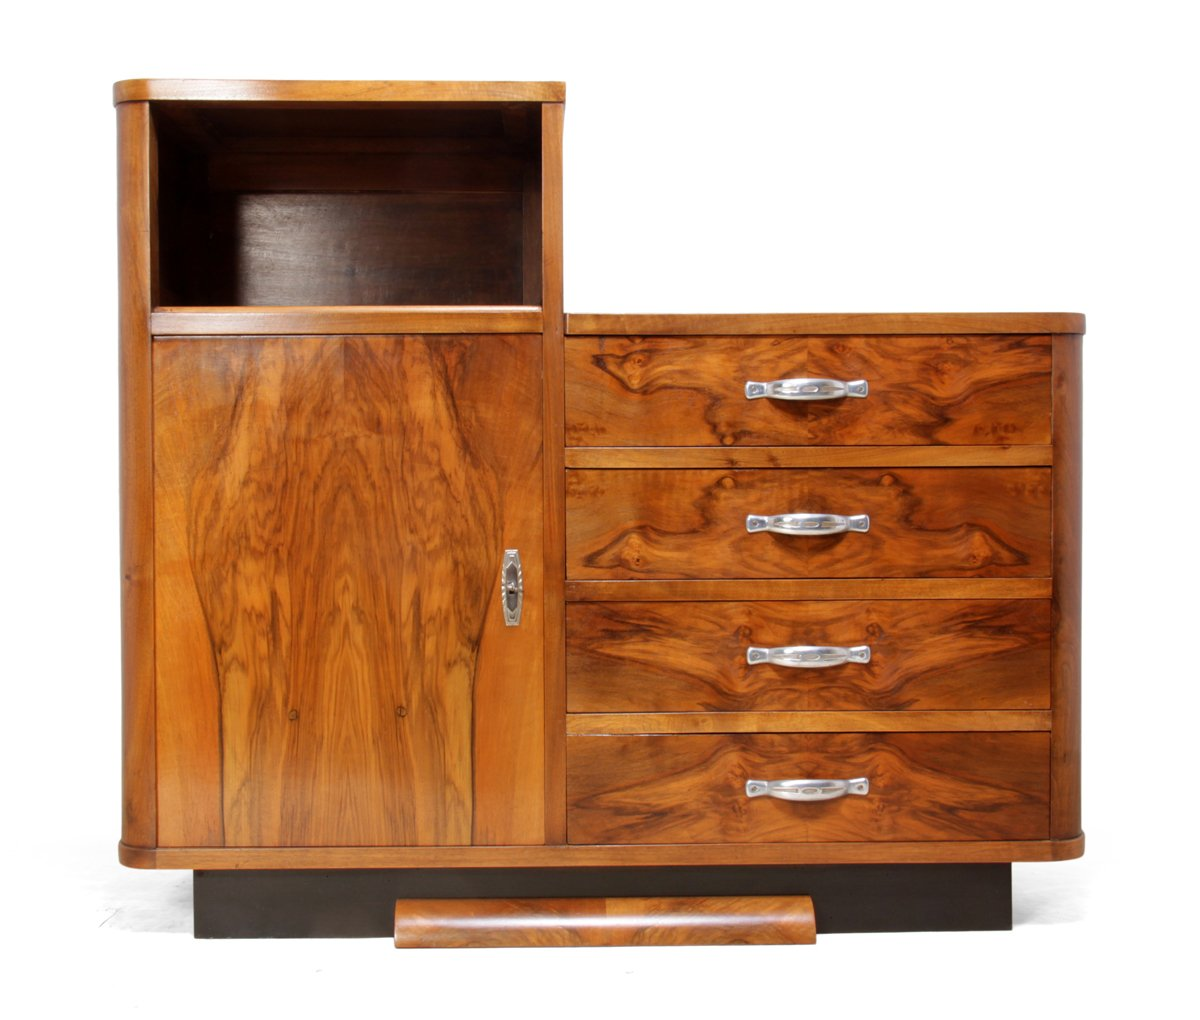 art deco nussholz schrank 1930er bei pamono kaufen. Black Bedroom Furniture Sets. Home Design Ideas